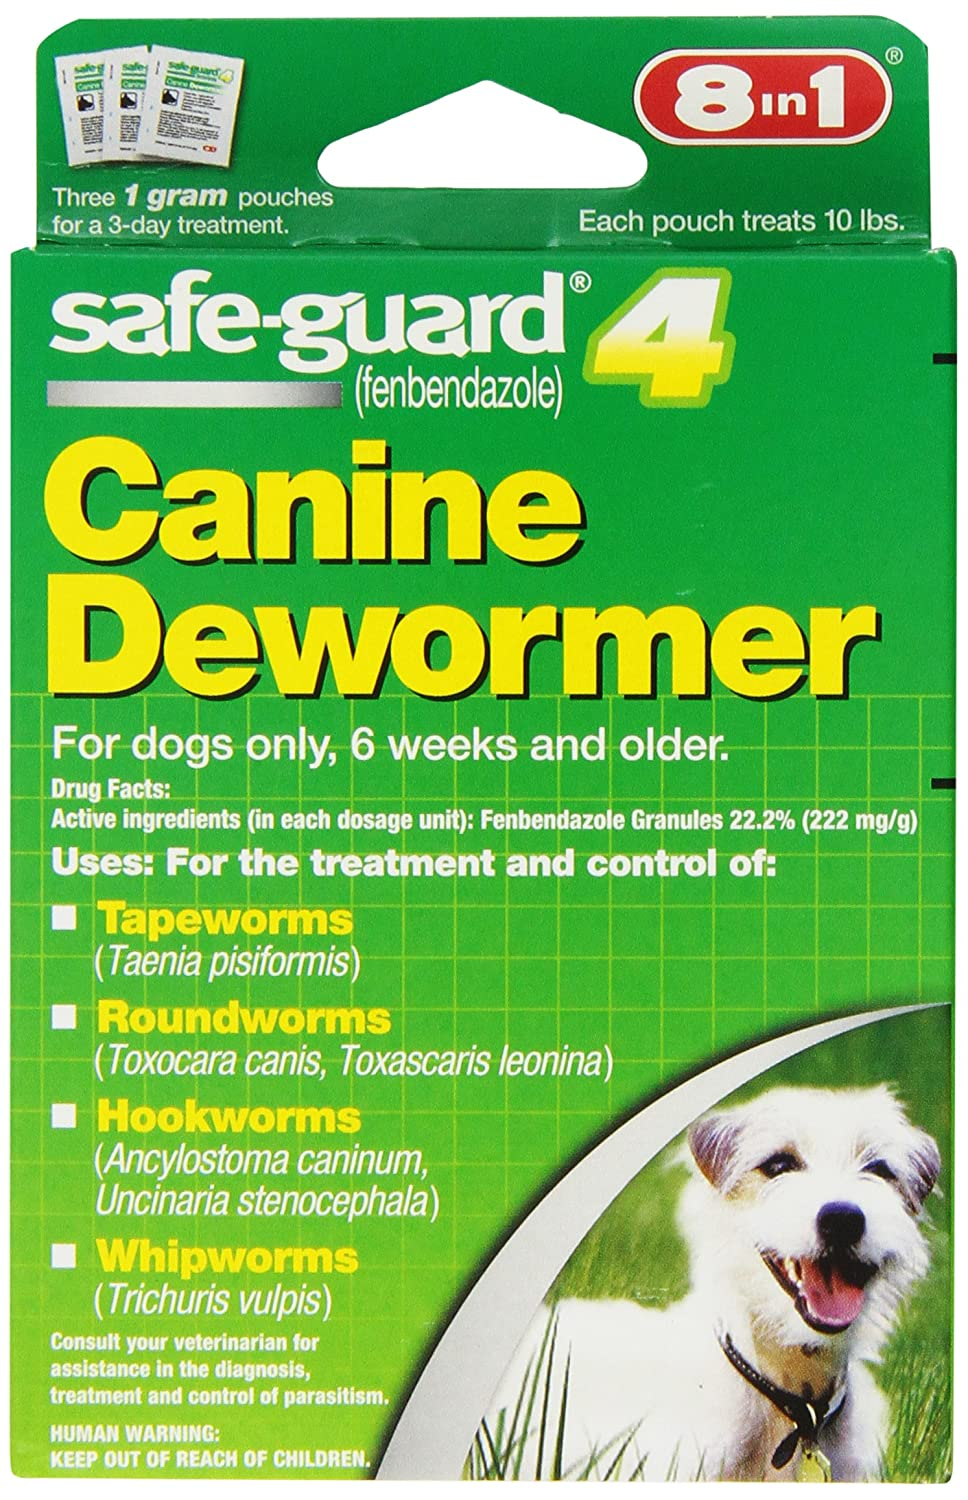 How long does it take for safeguard dewormer to work